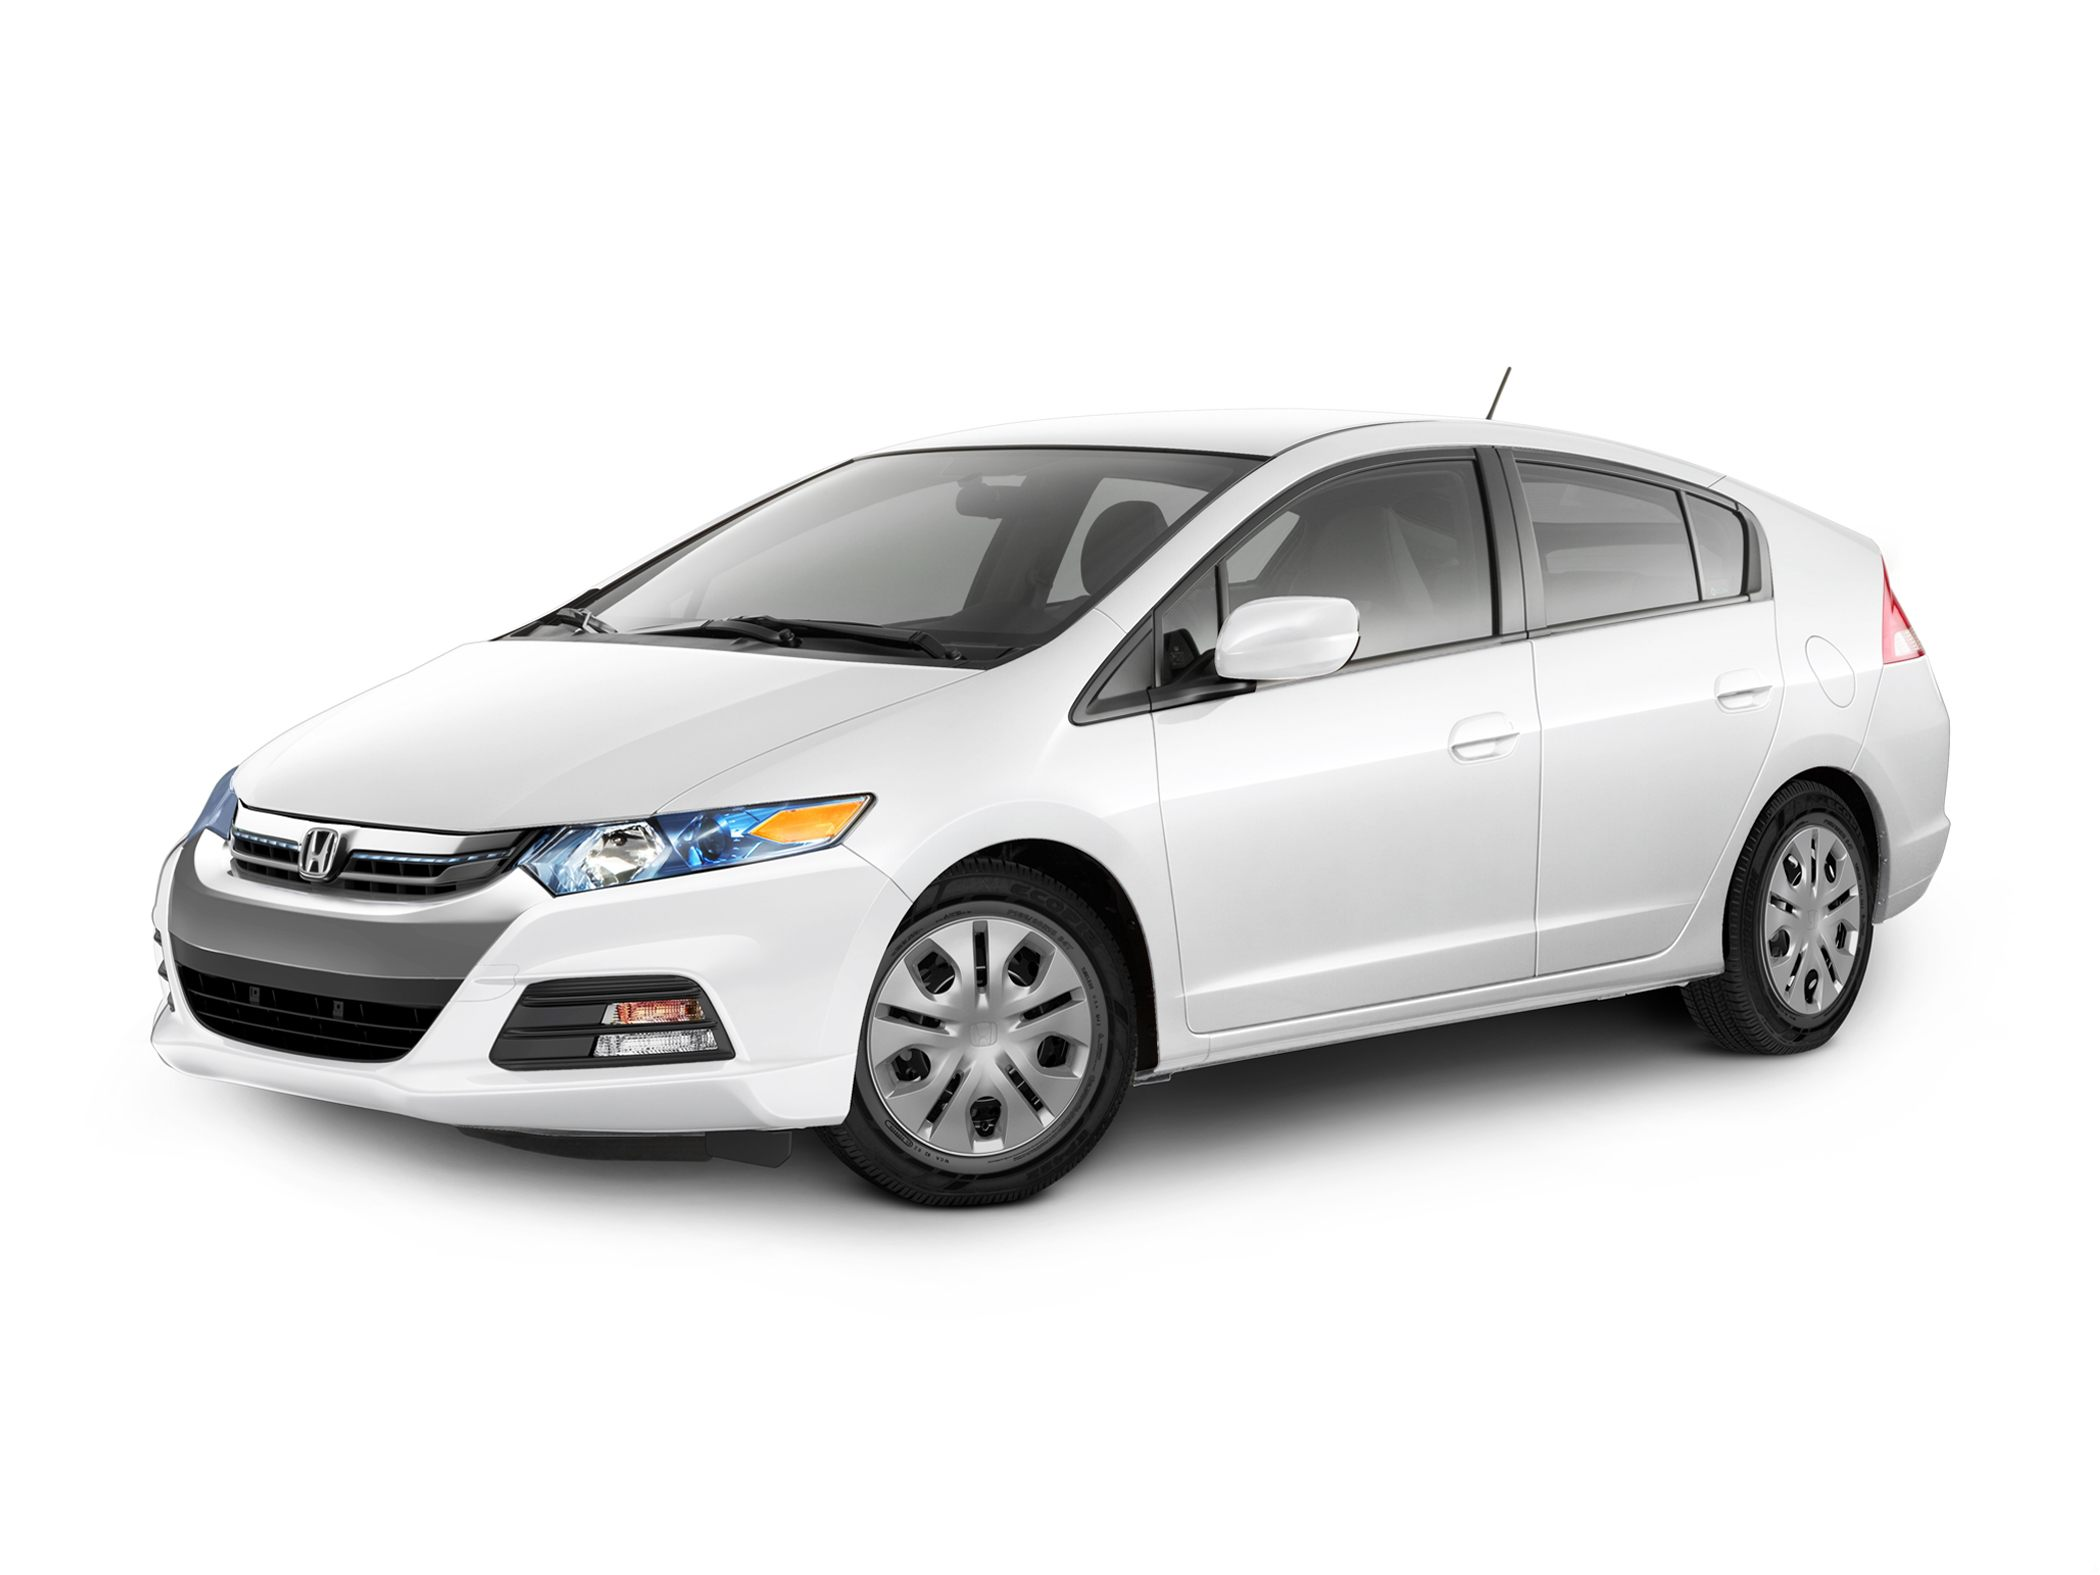 2013 Honda Insight #3